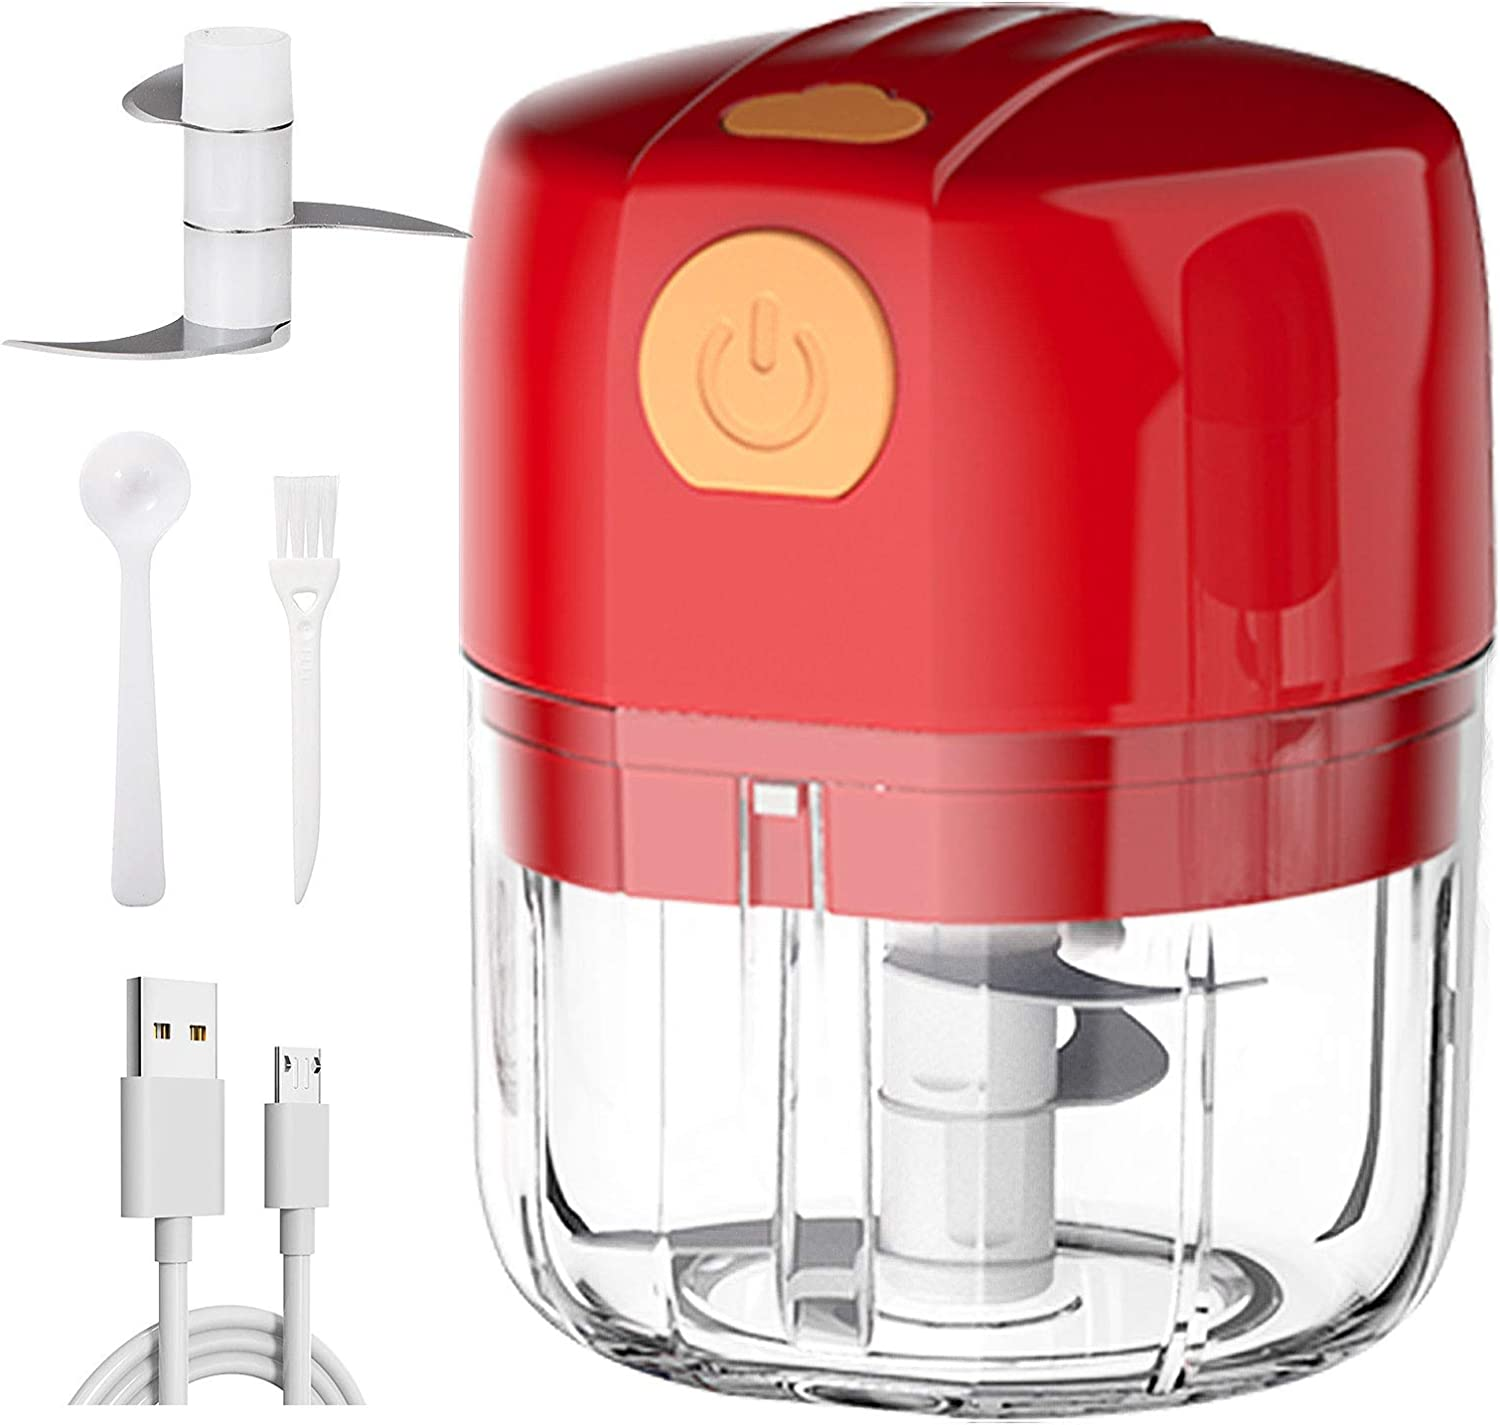 Electric Mini Garlic Chopper, Portable Garlic Mincer Grinder Food Slicer Garlic Chopper for Fruit Meat Onion Pepper Vegetable Nuts Small Food Processor (Red, 45W, 250ML)